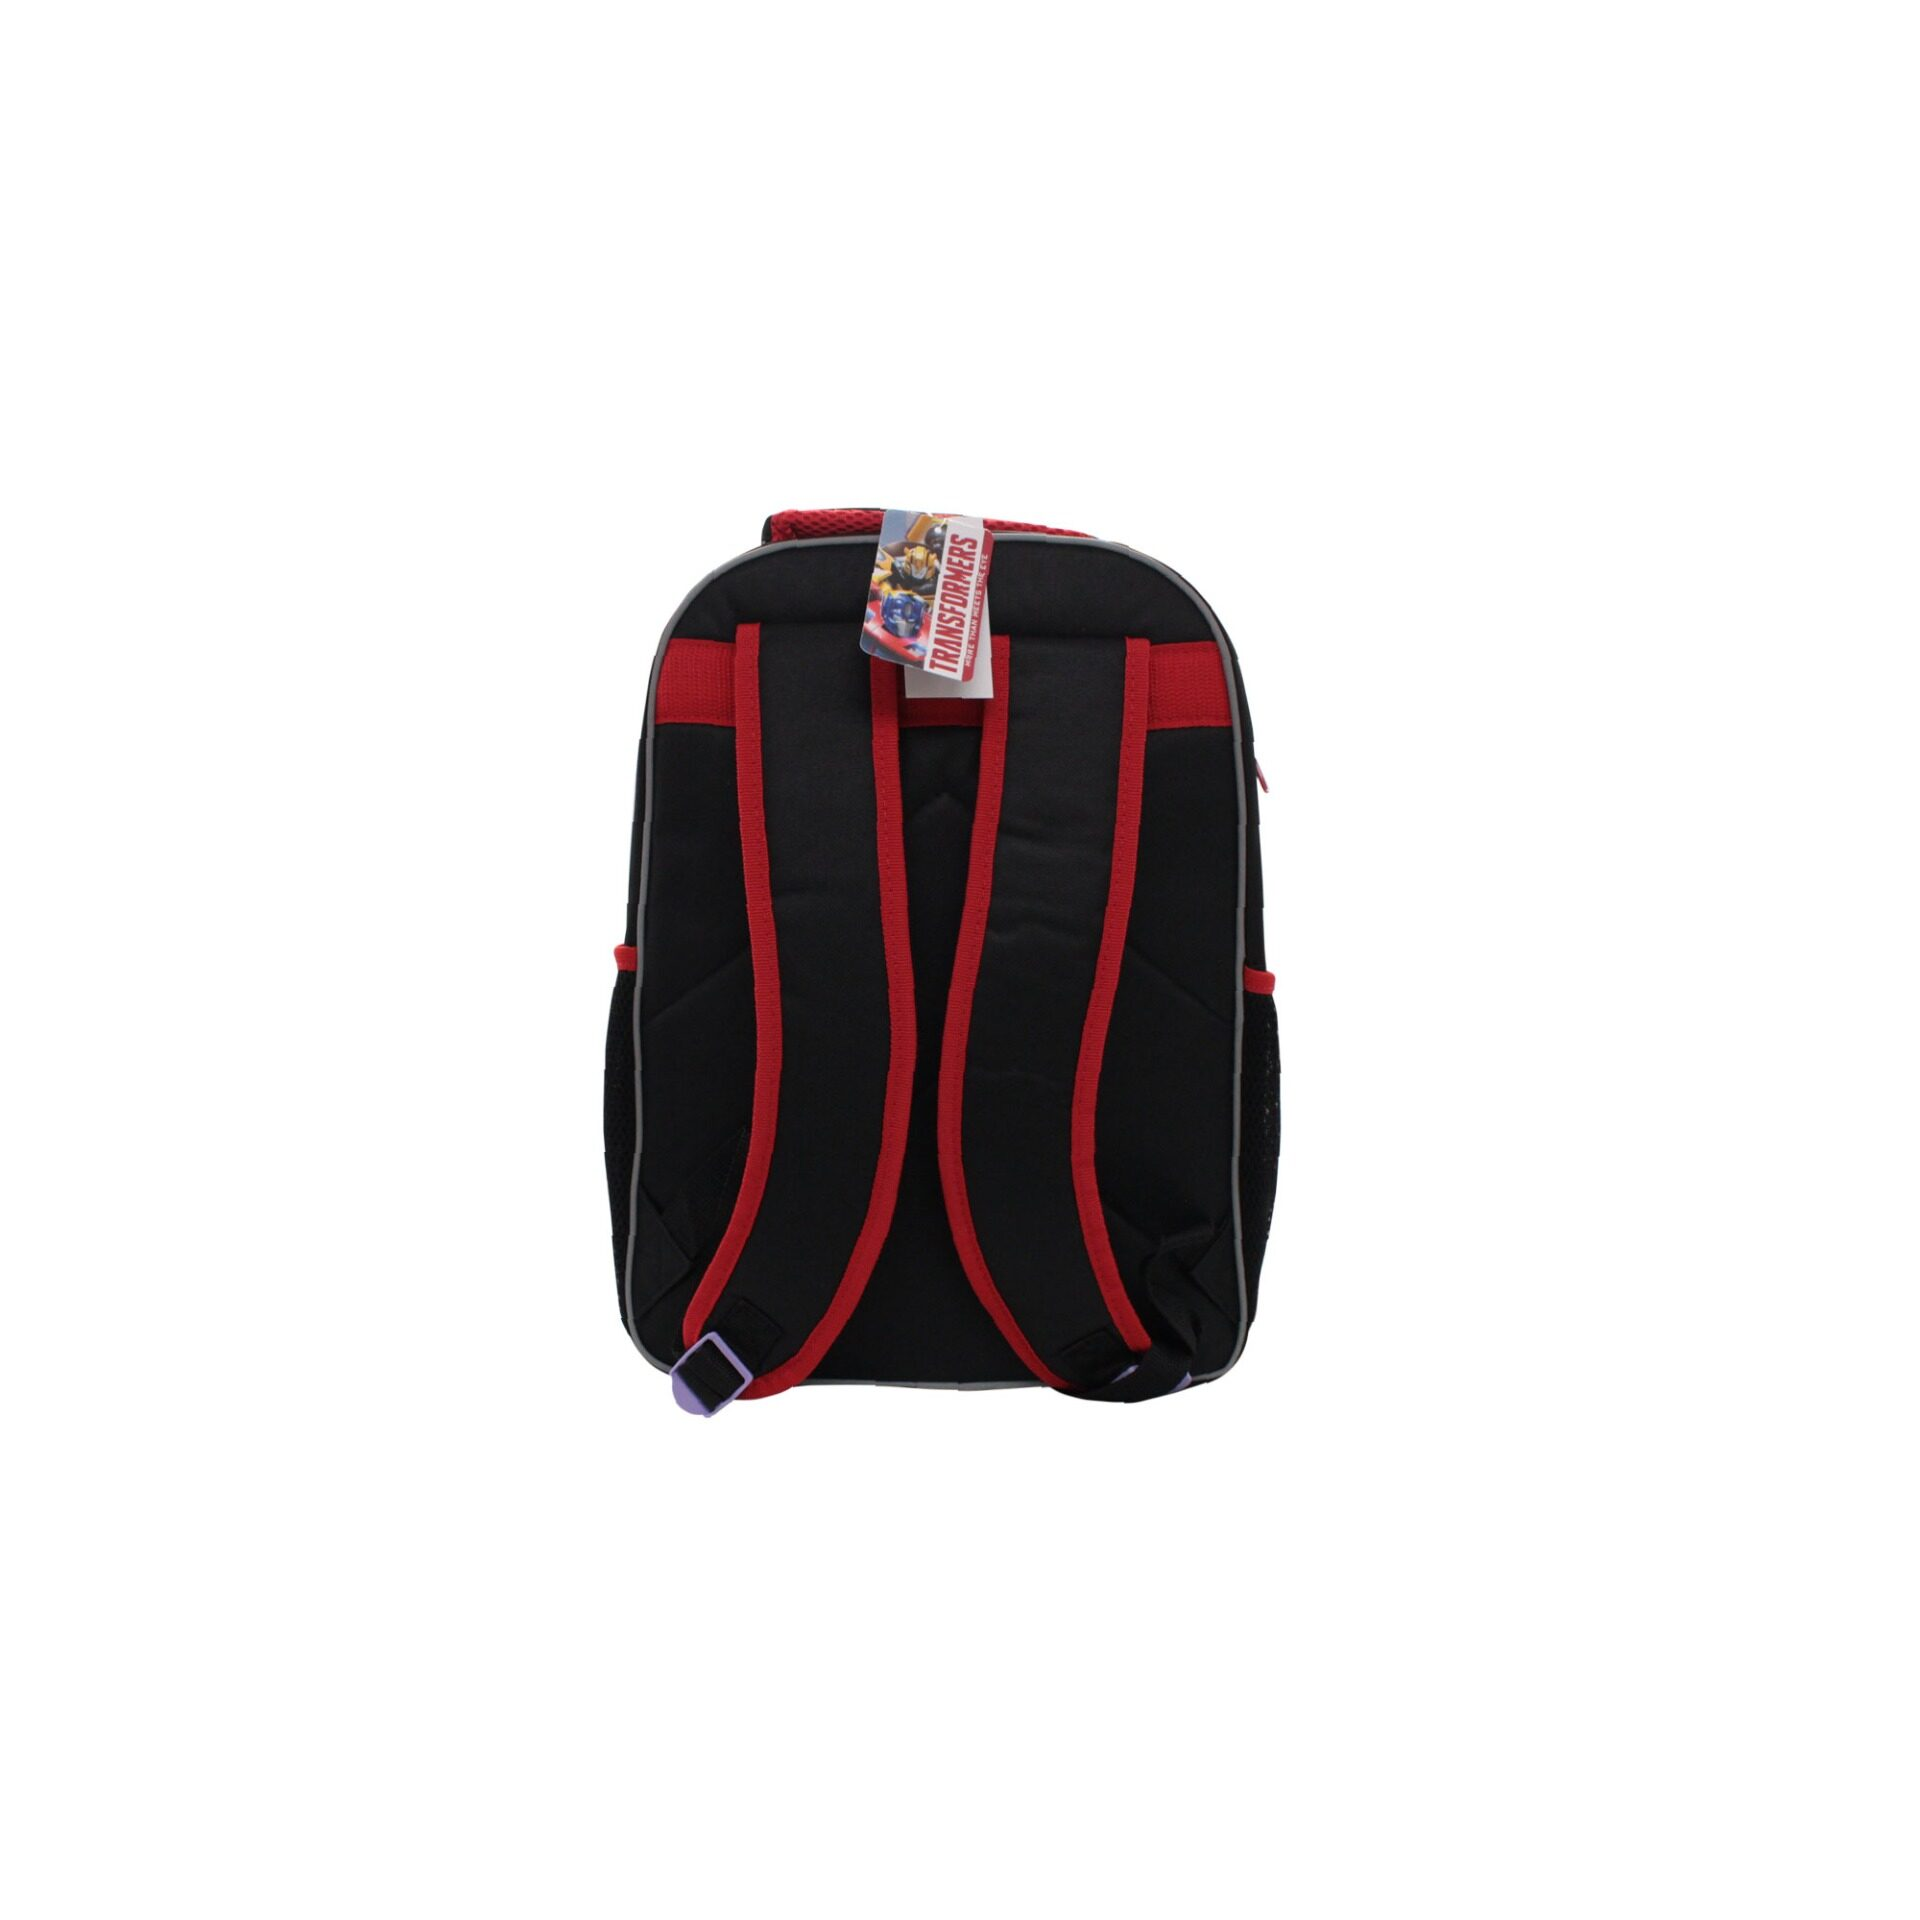 Transformers Decepticons School Bag With Front Zipper Pouch Kid's Boys Pre School Bag (Grey & Black) Age 7 Years & Above